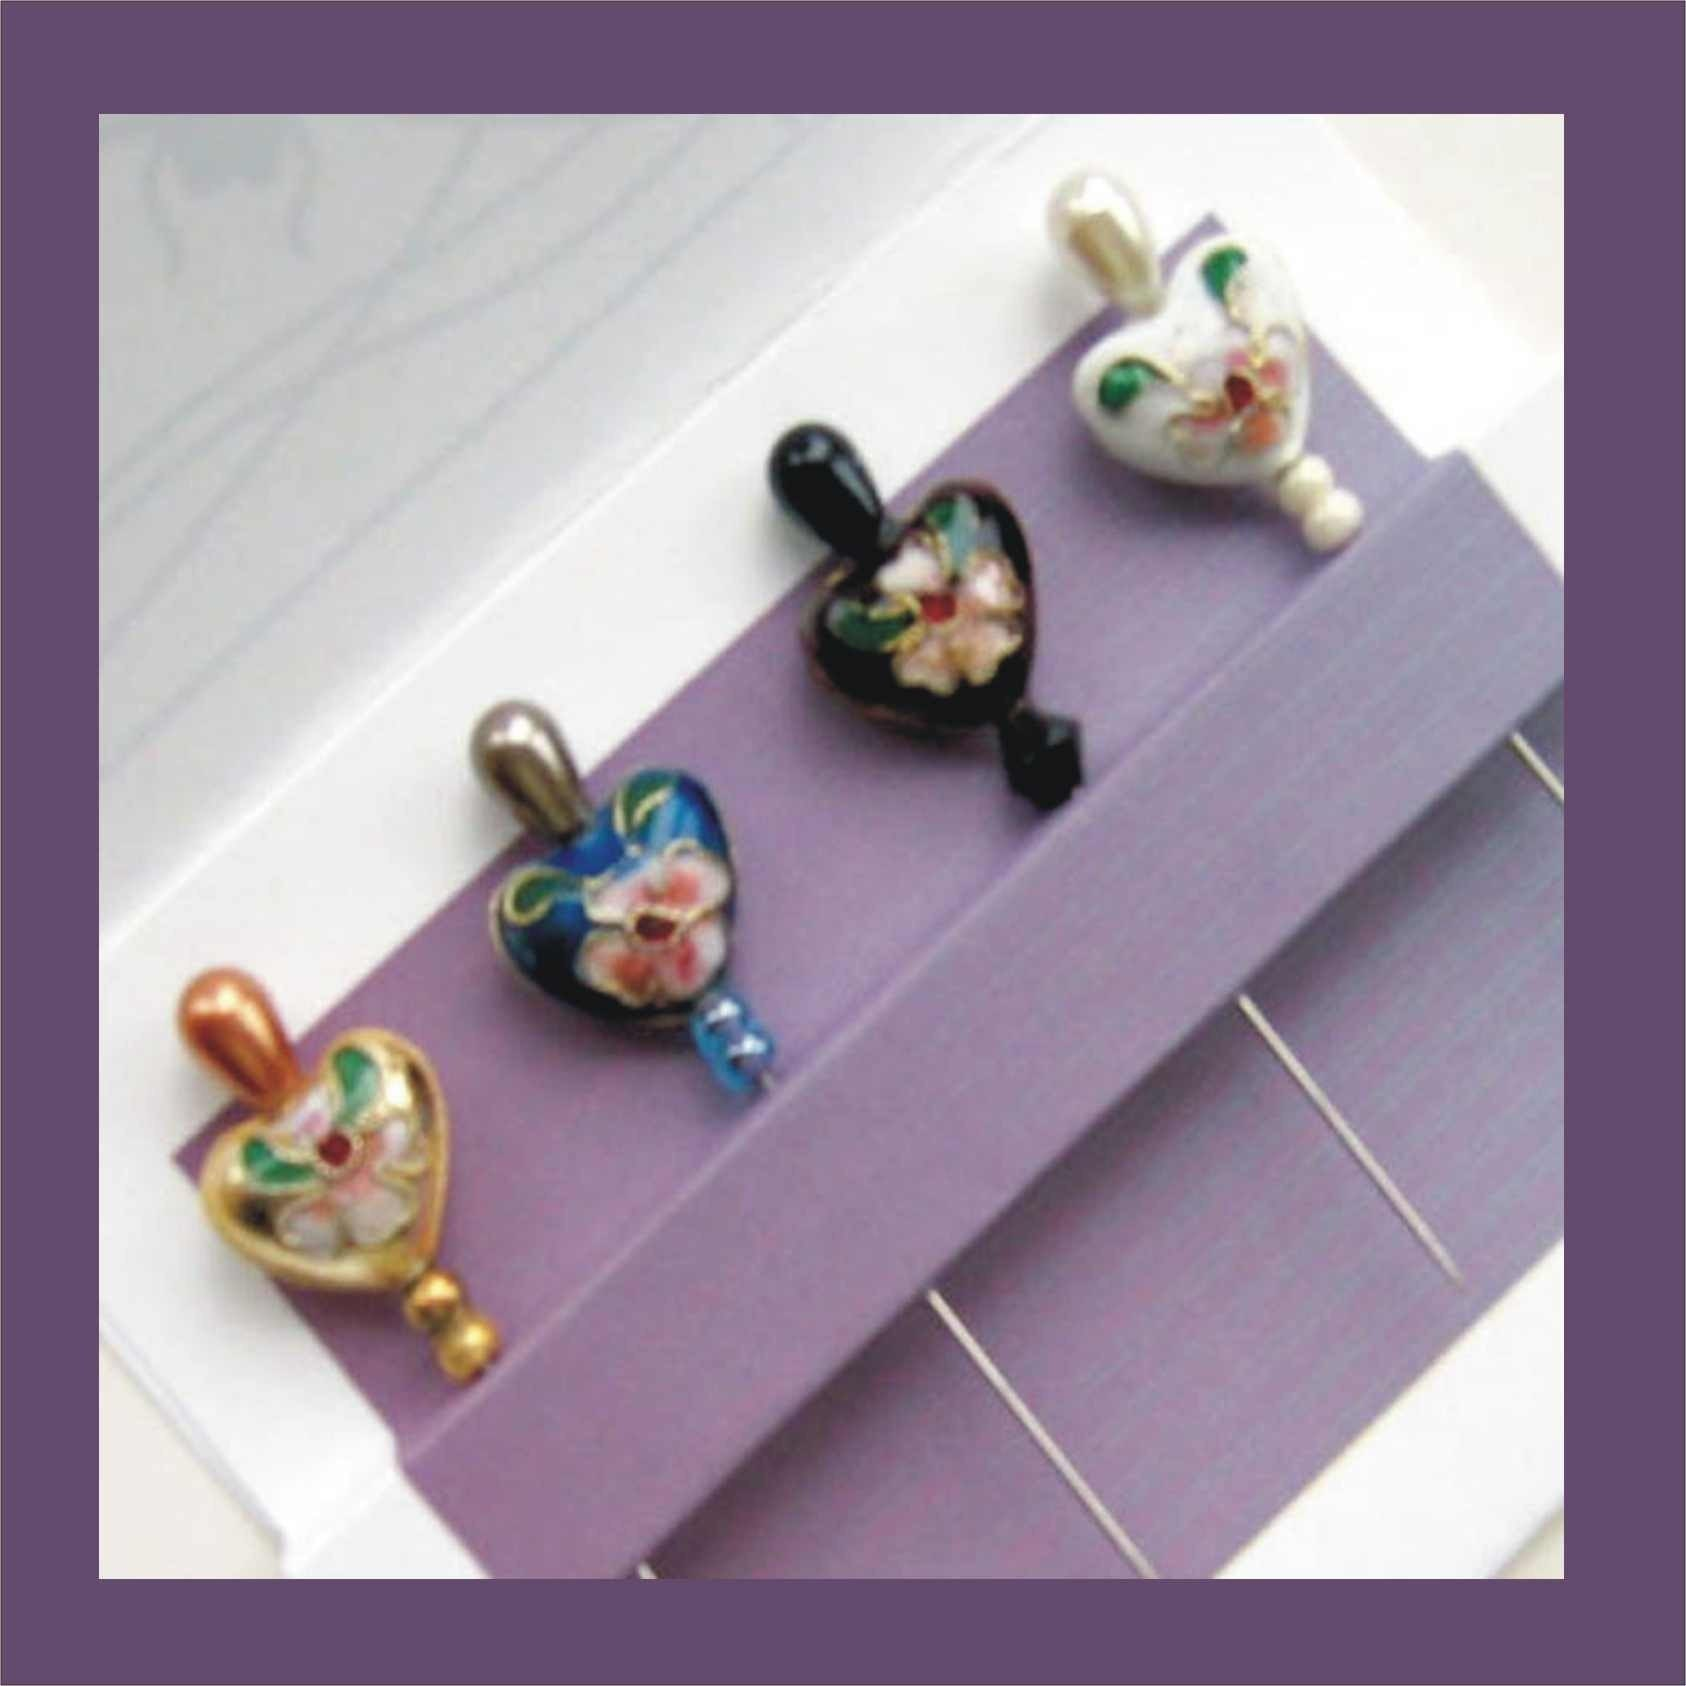 decorative quilt pins cloisonne stick pins pincushion. Black Bedroom Furniture Sets. Home Design Ideas